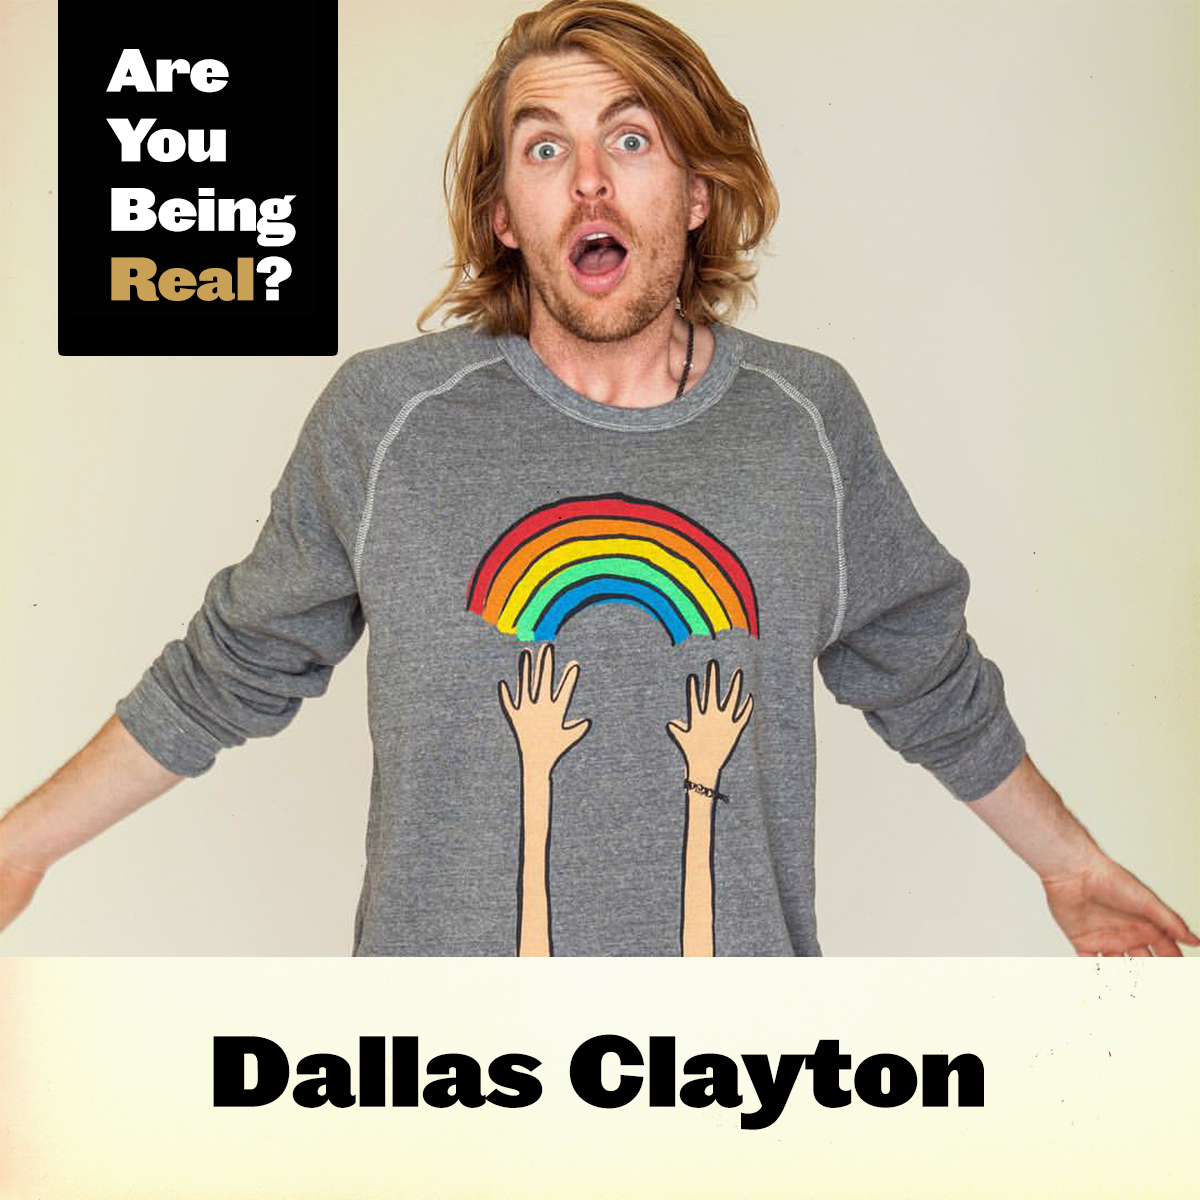 Dallas Clayton Interview | Are You Being Real?